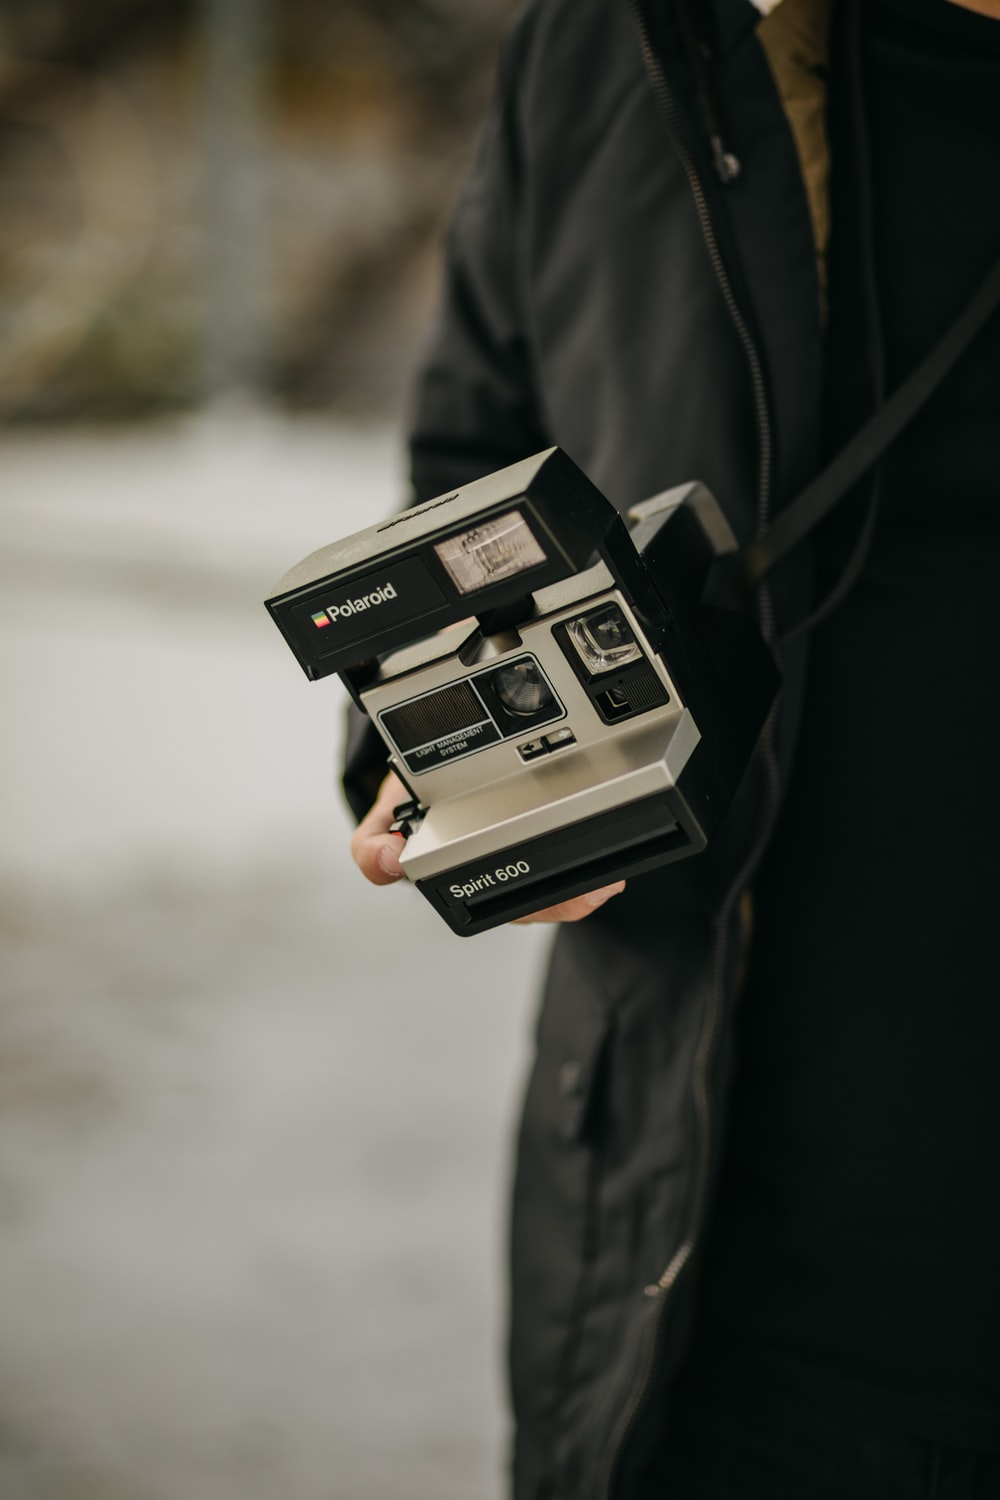 selective focus photography of person holding gray and black camera